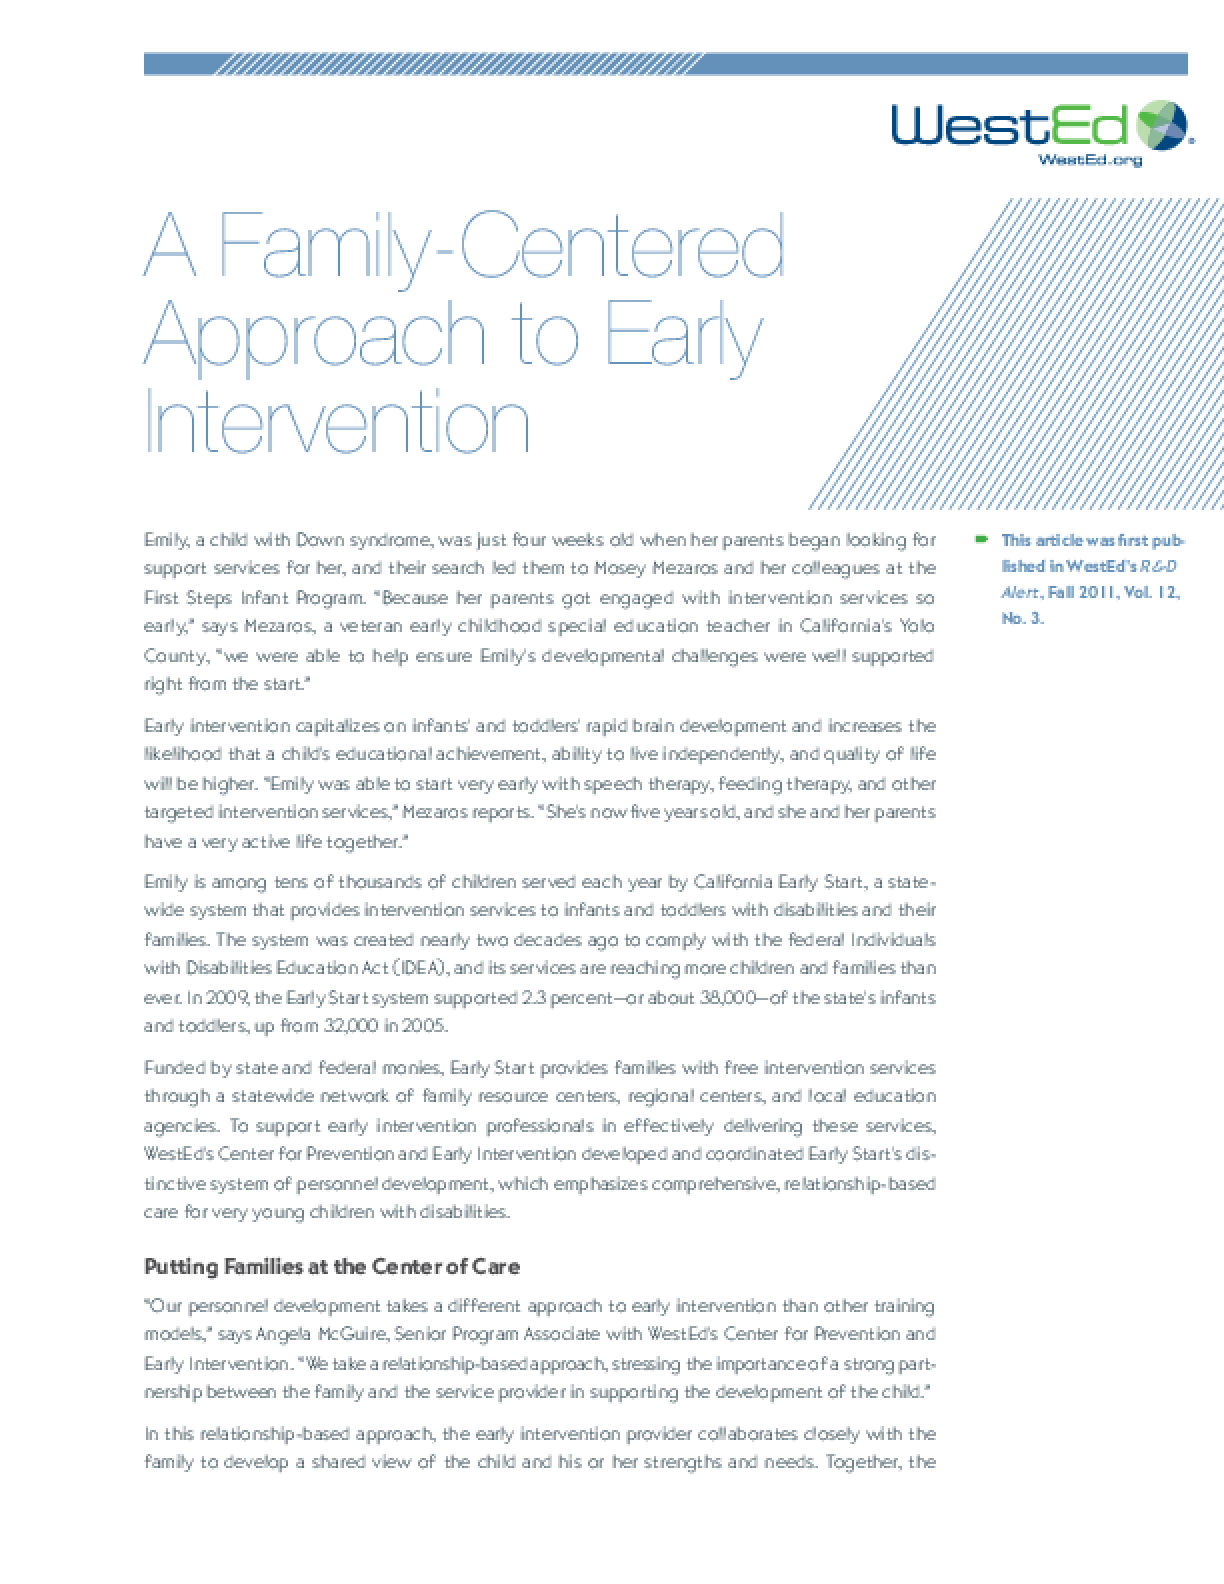 A Family-Centered Approach to Early Intervention - IssueLab